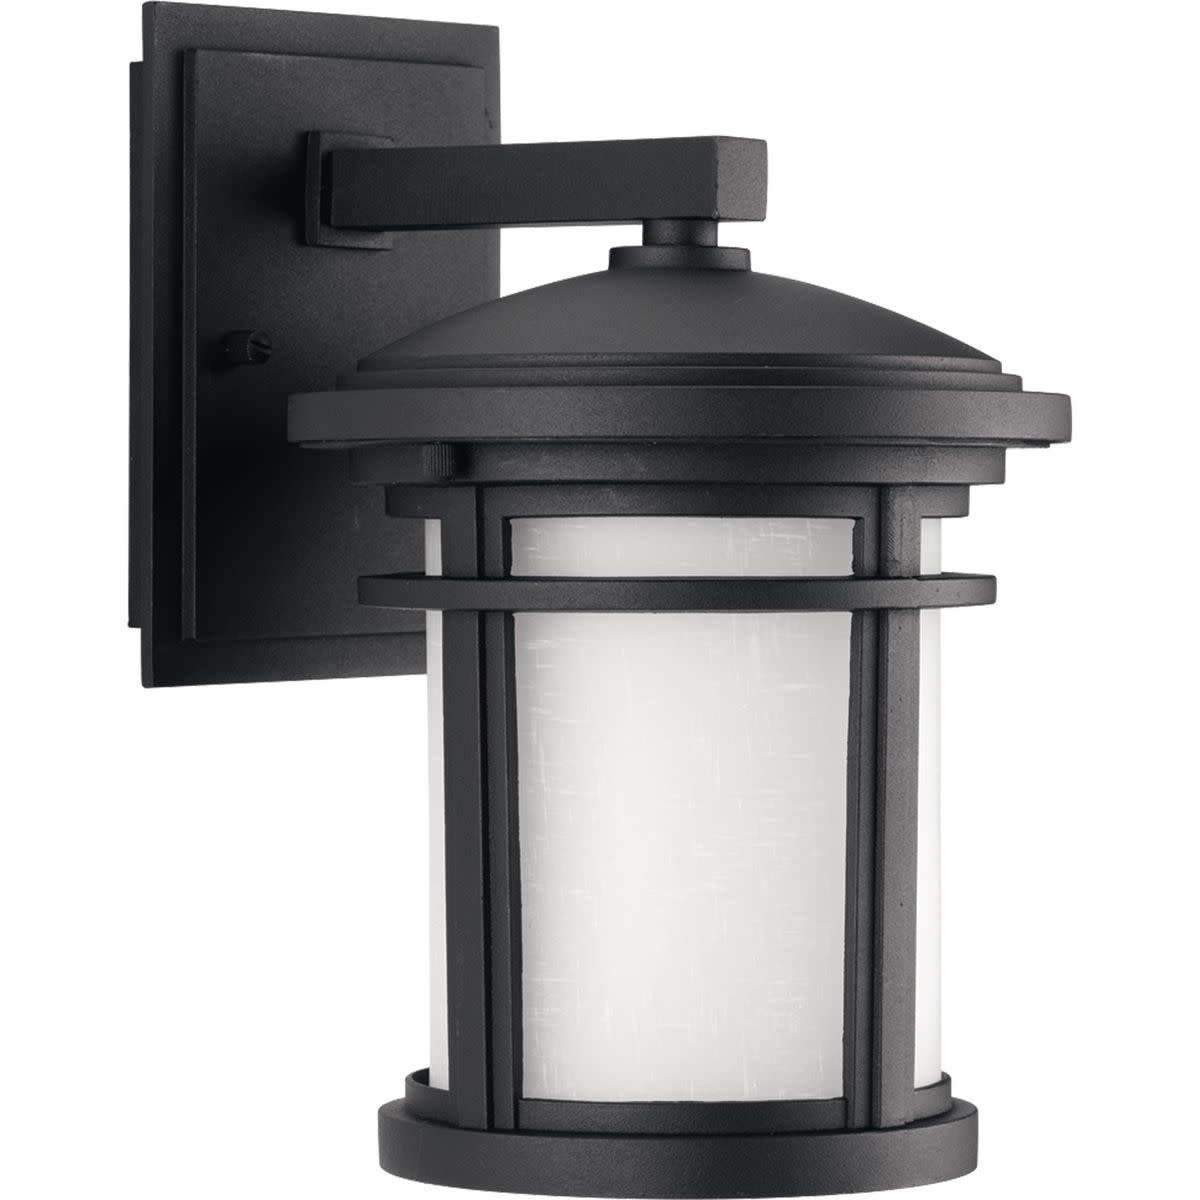 """Progress Lighting P6084 Wish 1 Light 10"""" Tall Outdoor Wall Sconce with Etched Glass Diffuser"""